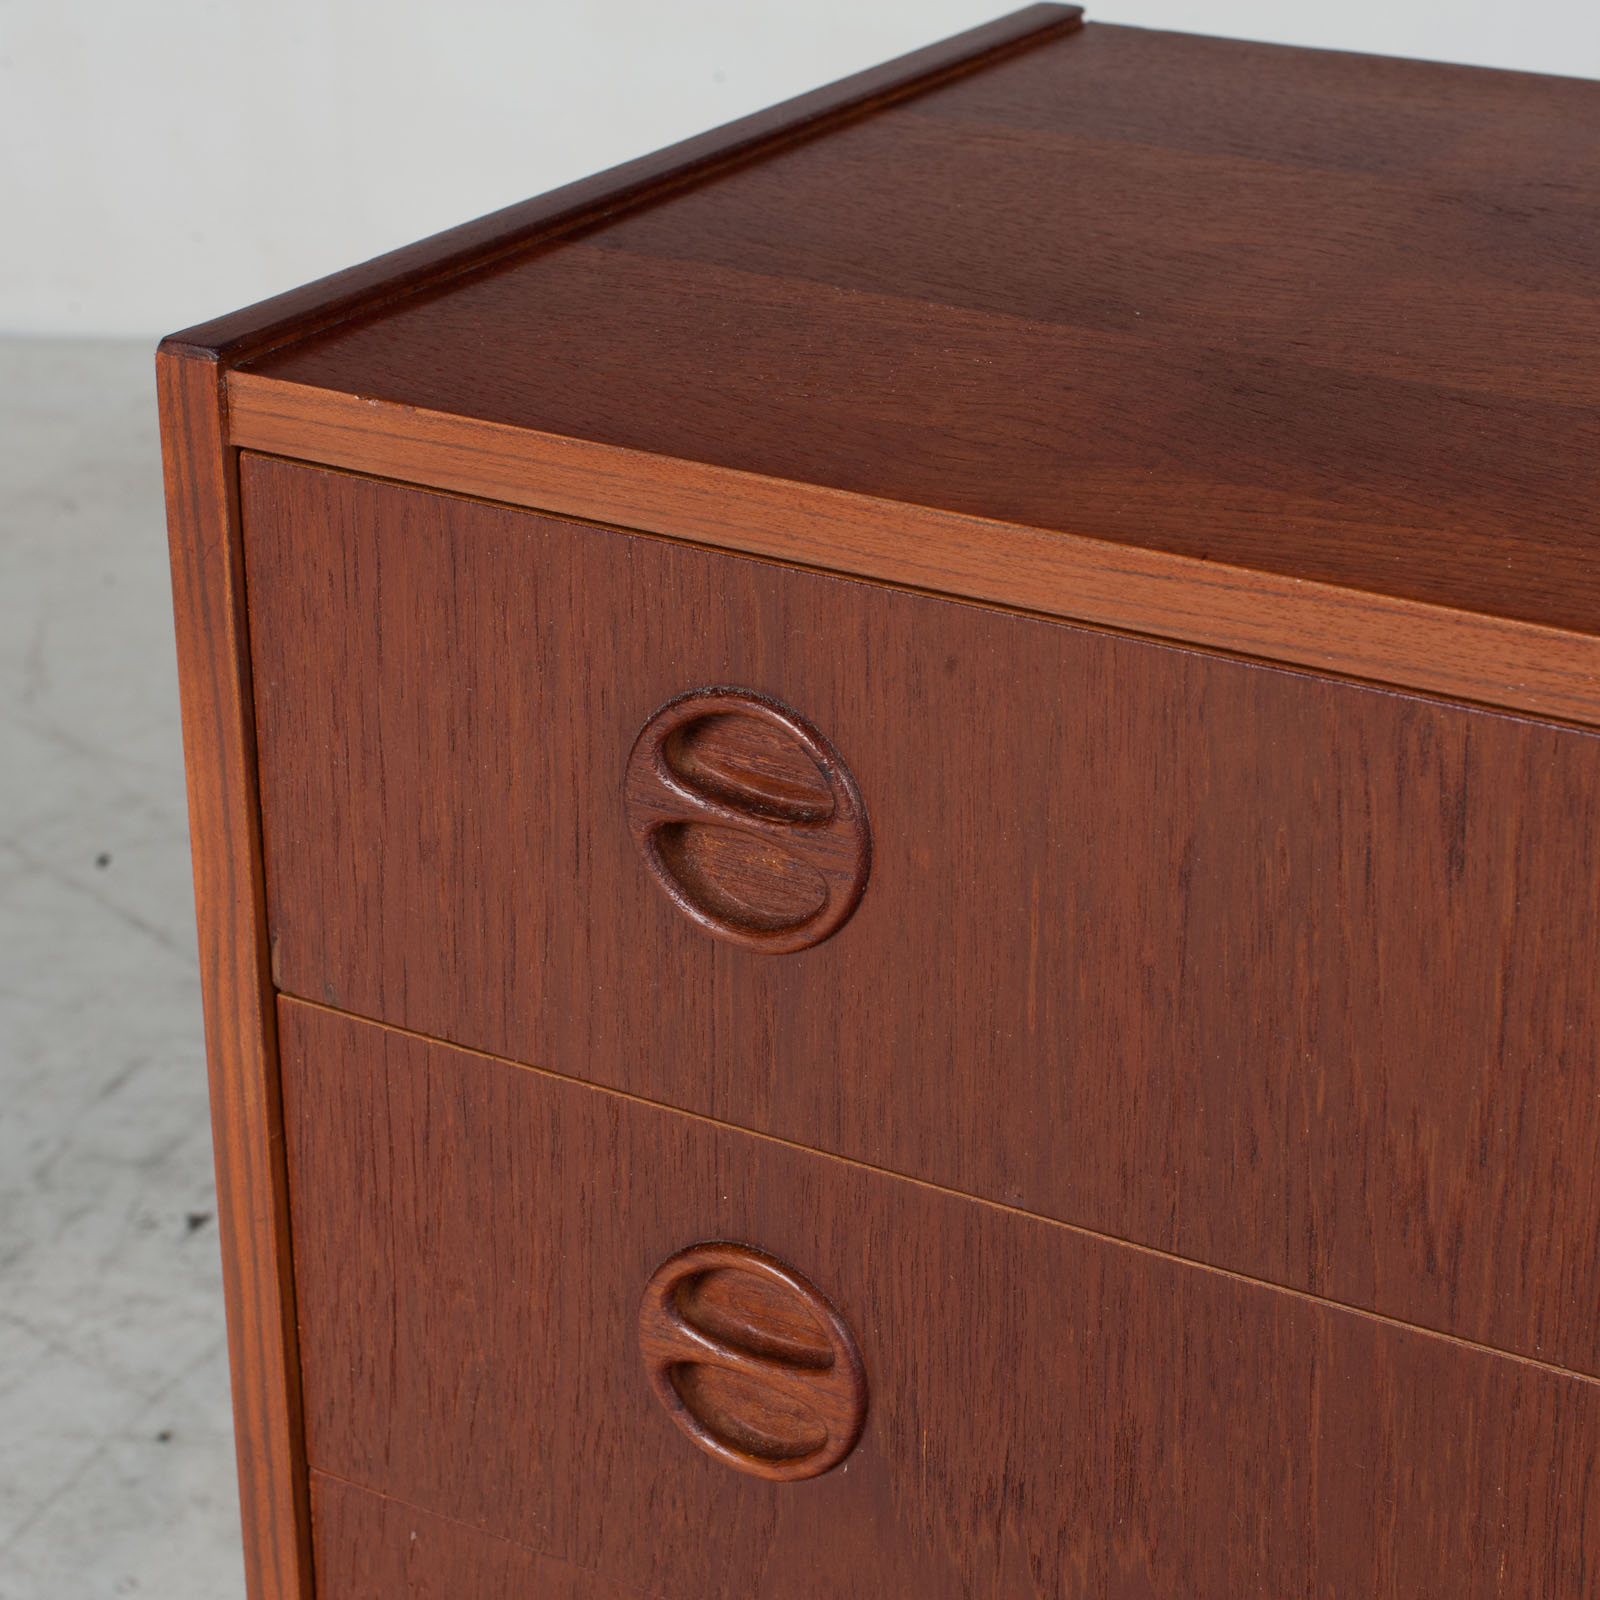 Chest Of Drawers In Teak, 1960s, Denmark 6